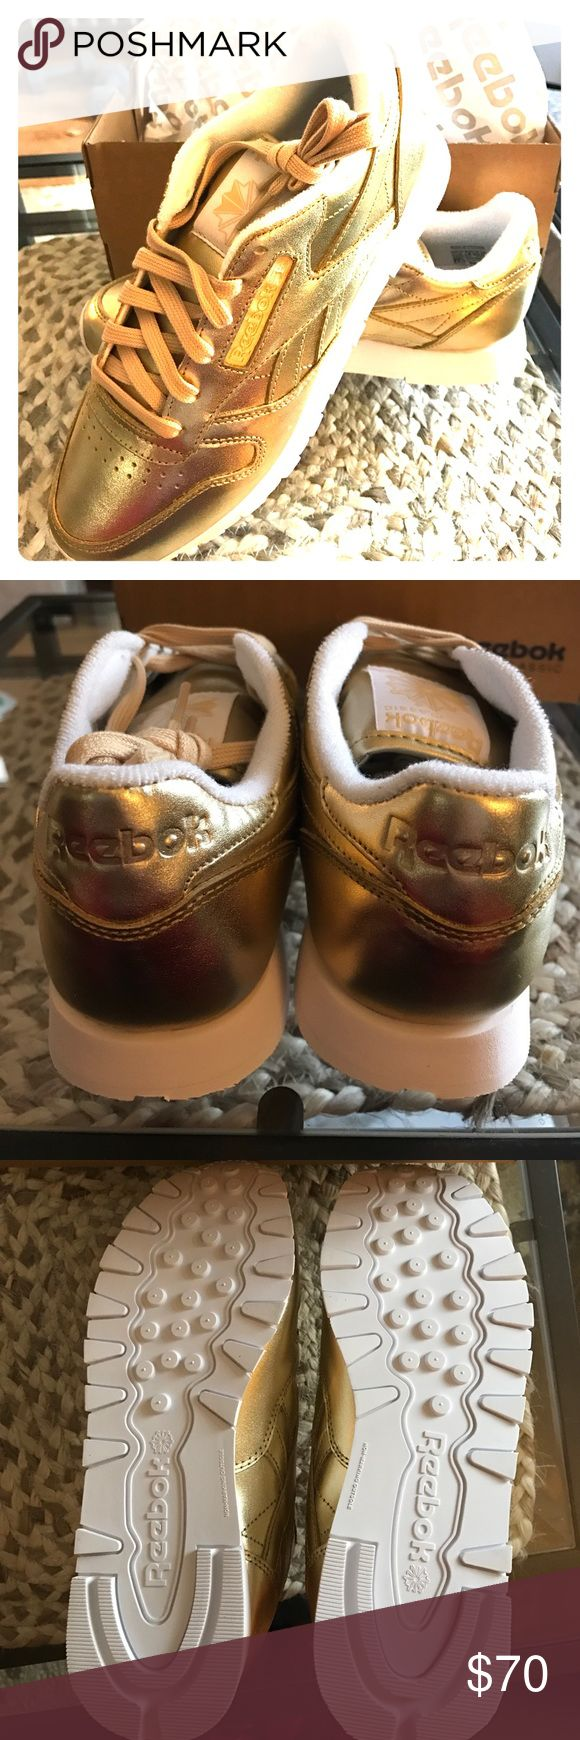 BRAND NEW Gold Reebok Classic Sneakers Amazing pair of brand new gold classic Reebok sneakers. Never worn! Reebok Shoes Sneakers